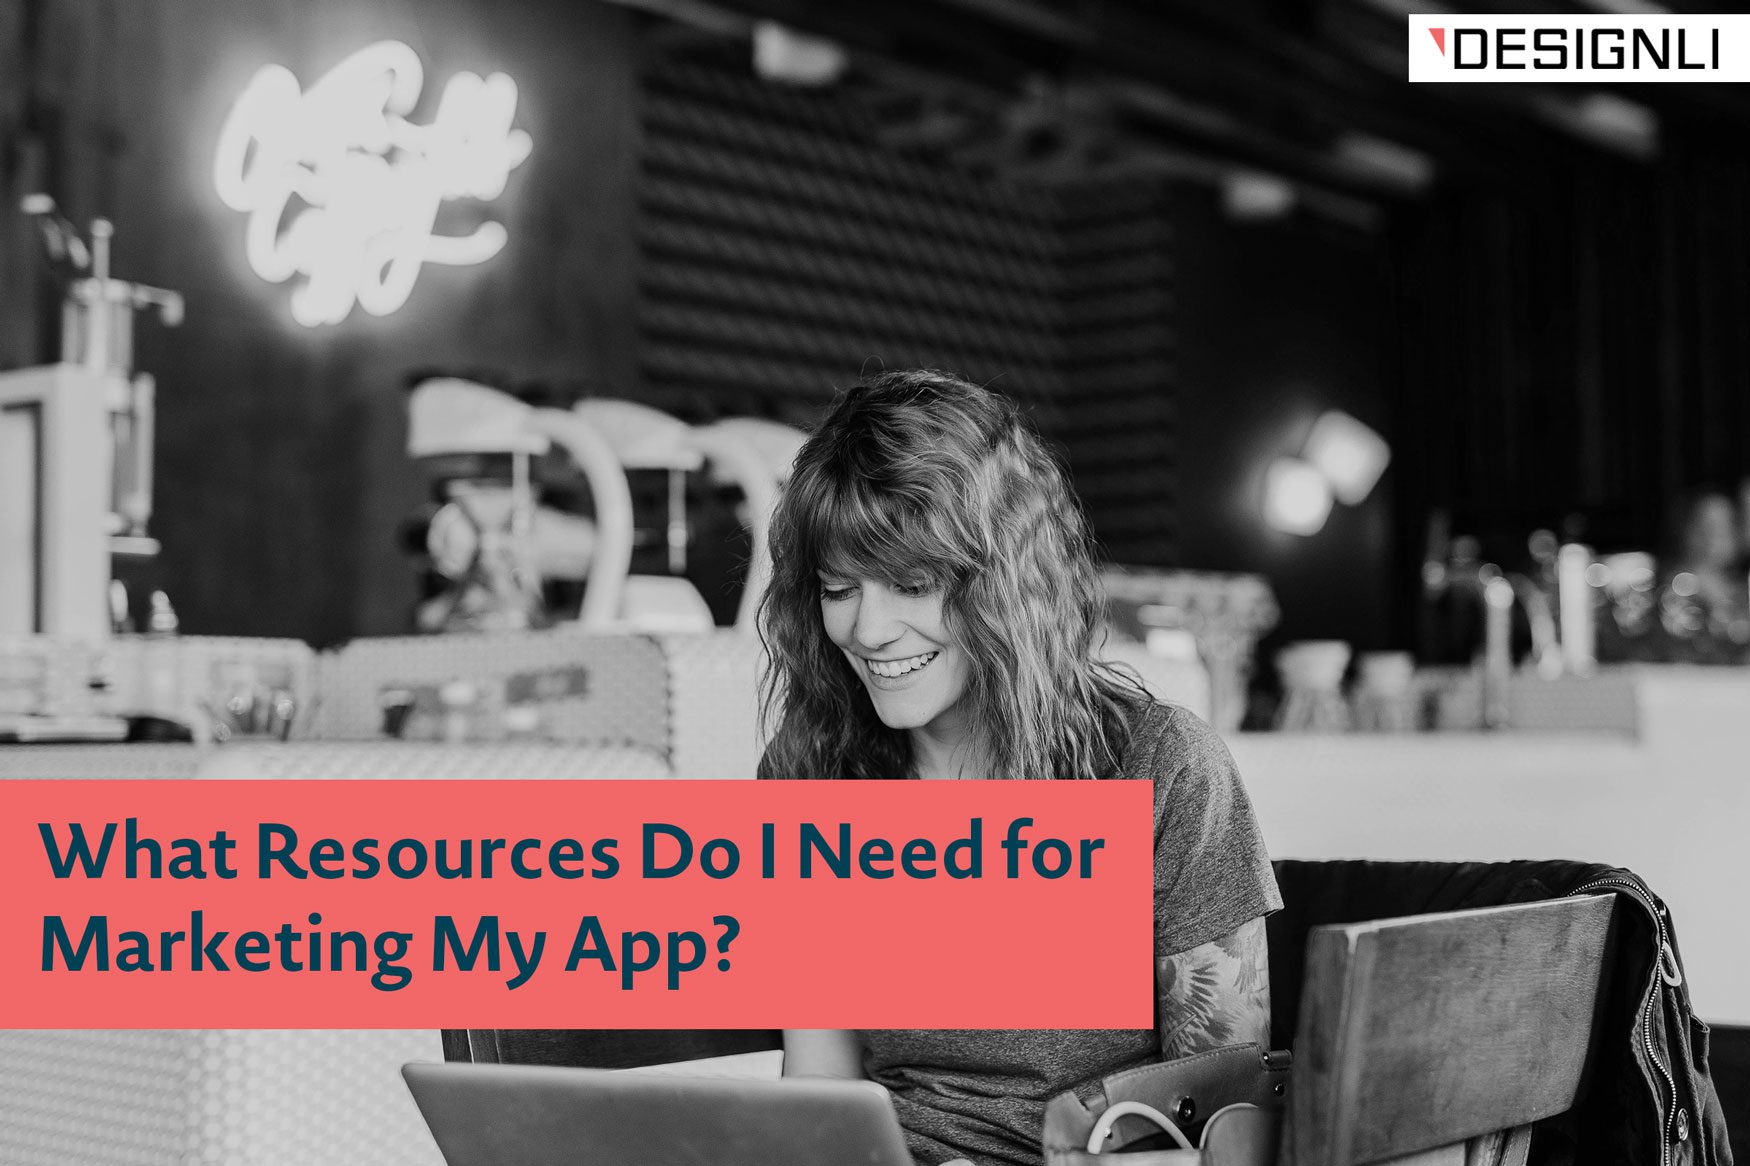 Resources for Marketing App